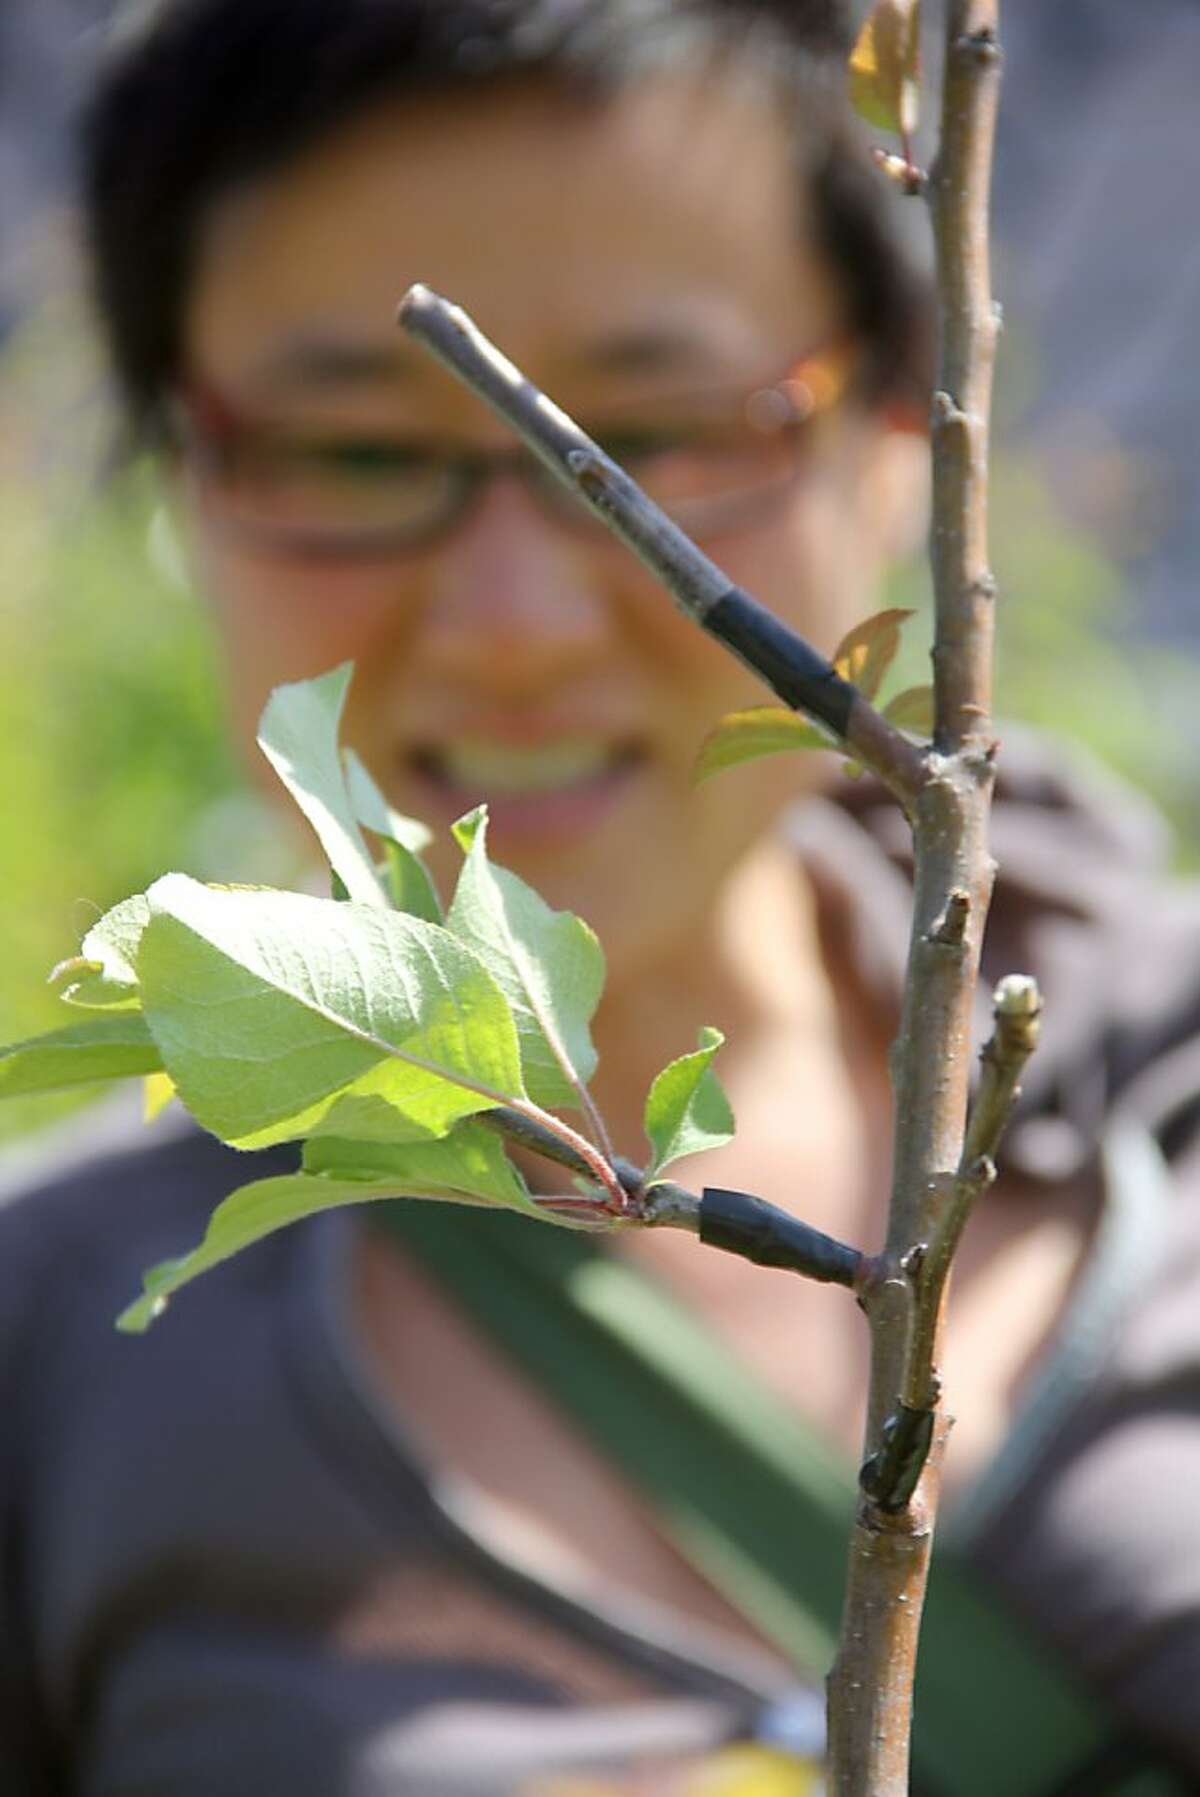 Tara Hui, of the Guerrilla Grafters, examines an ornamental apple tree in Oakland which has two grafts, one successful (the lower graft with the green leaves) and one unsuccessful (the upper, without leaves). These scions are apple from fruit-bearing trees.